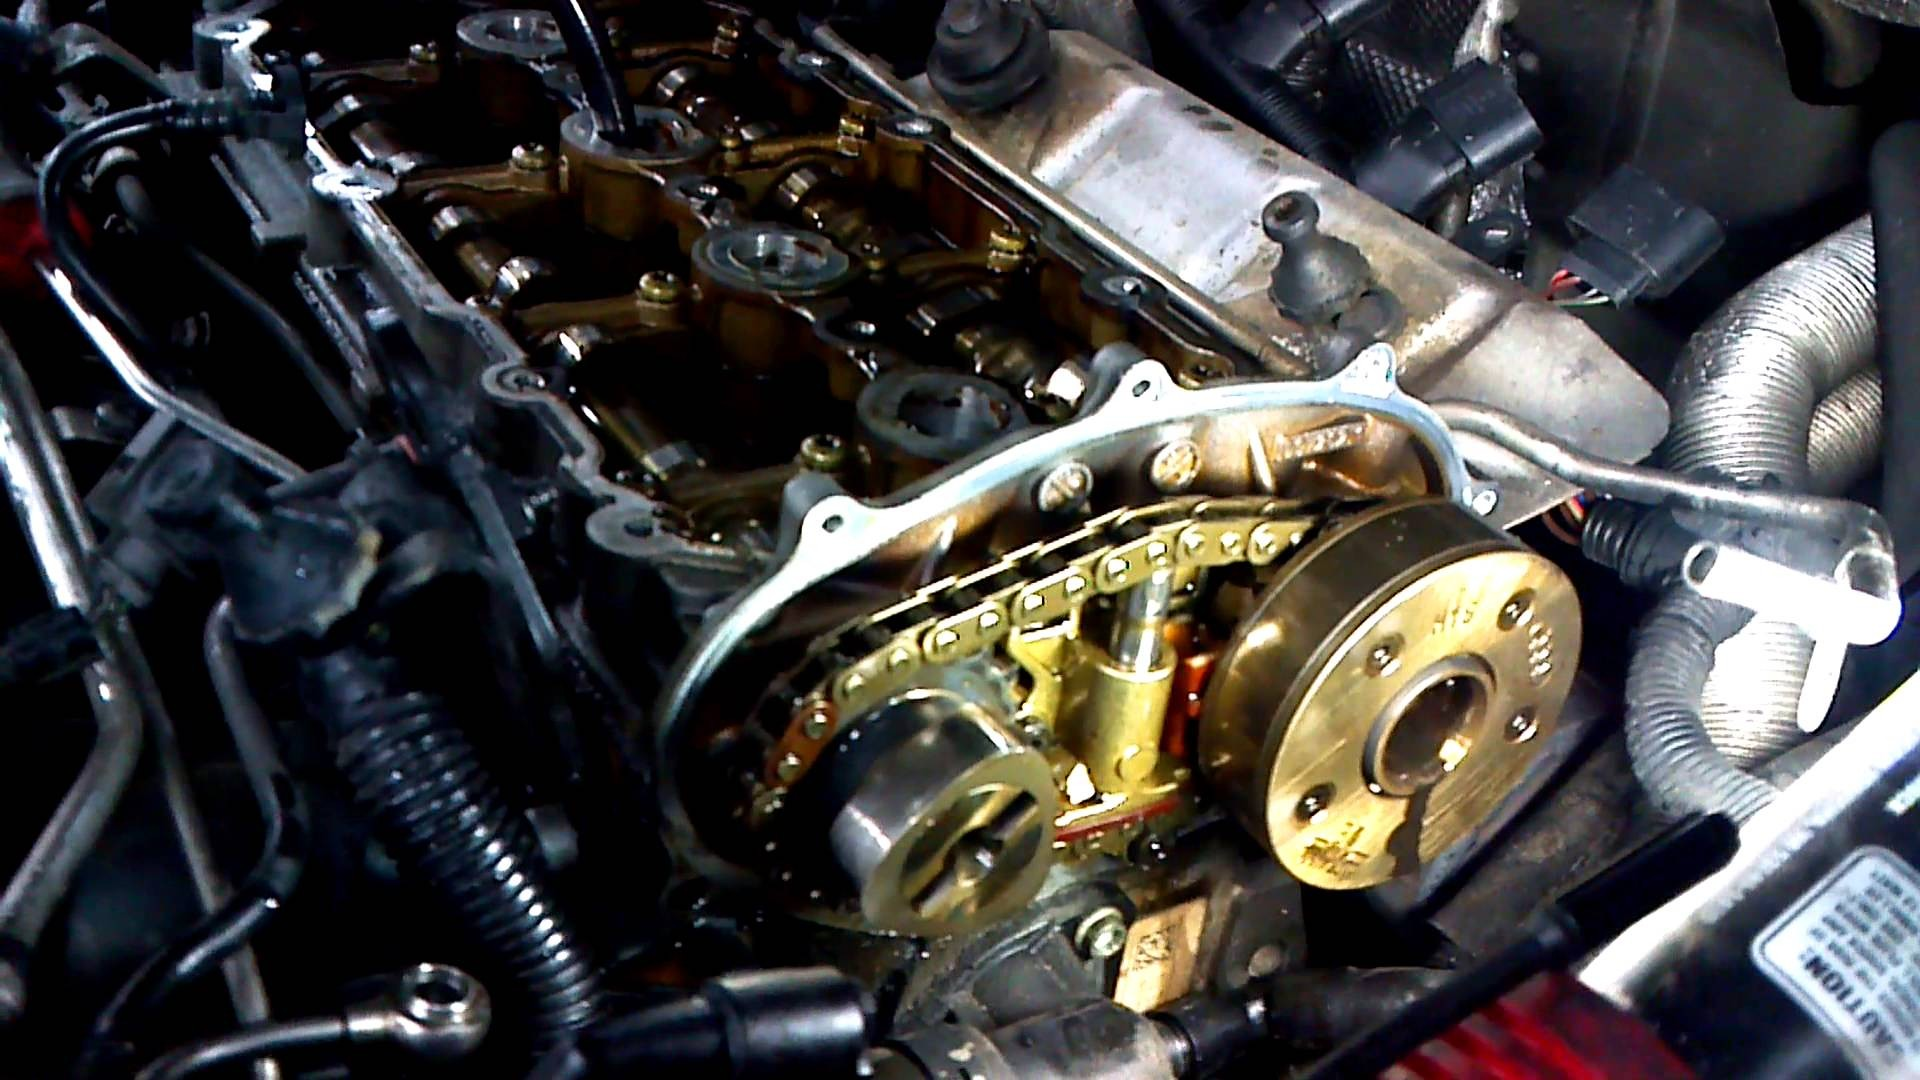 Vw 2 0 Fsi Engine Diagram Vw 2 0 Fsi Engine Diagram Audi Vw 2 0l T Cam Chain issues Youtube Of Vw 2 0 Fsi Engine Diagram